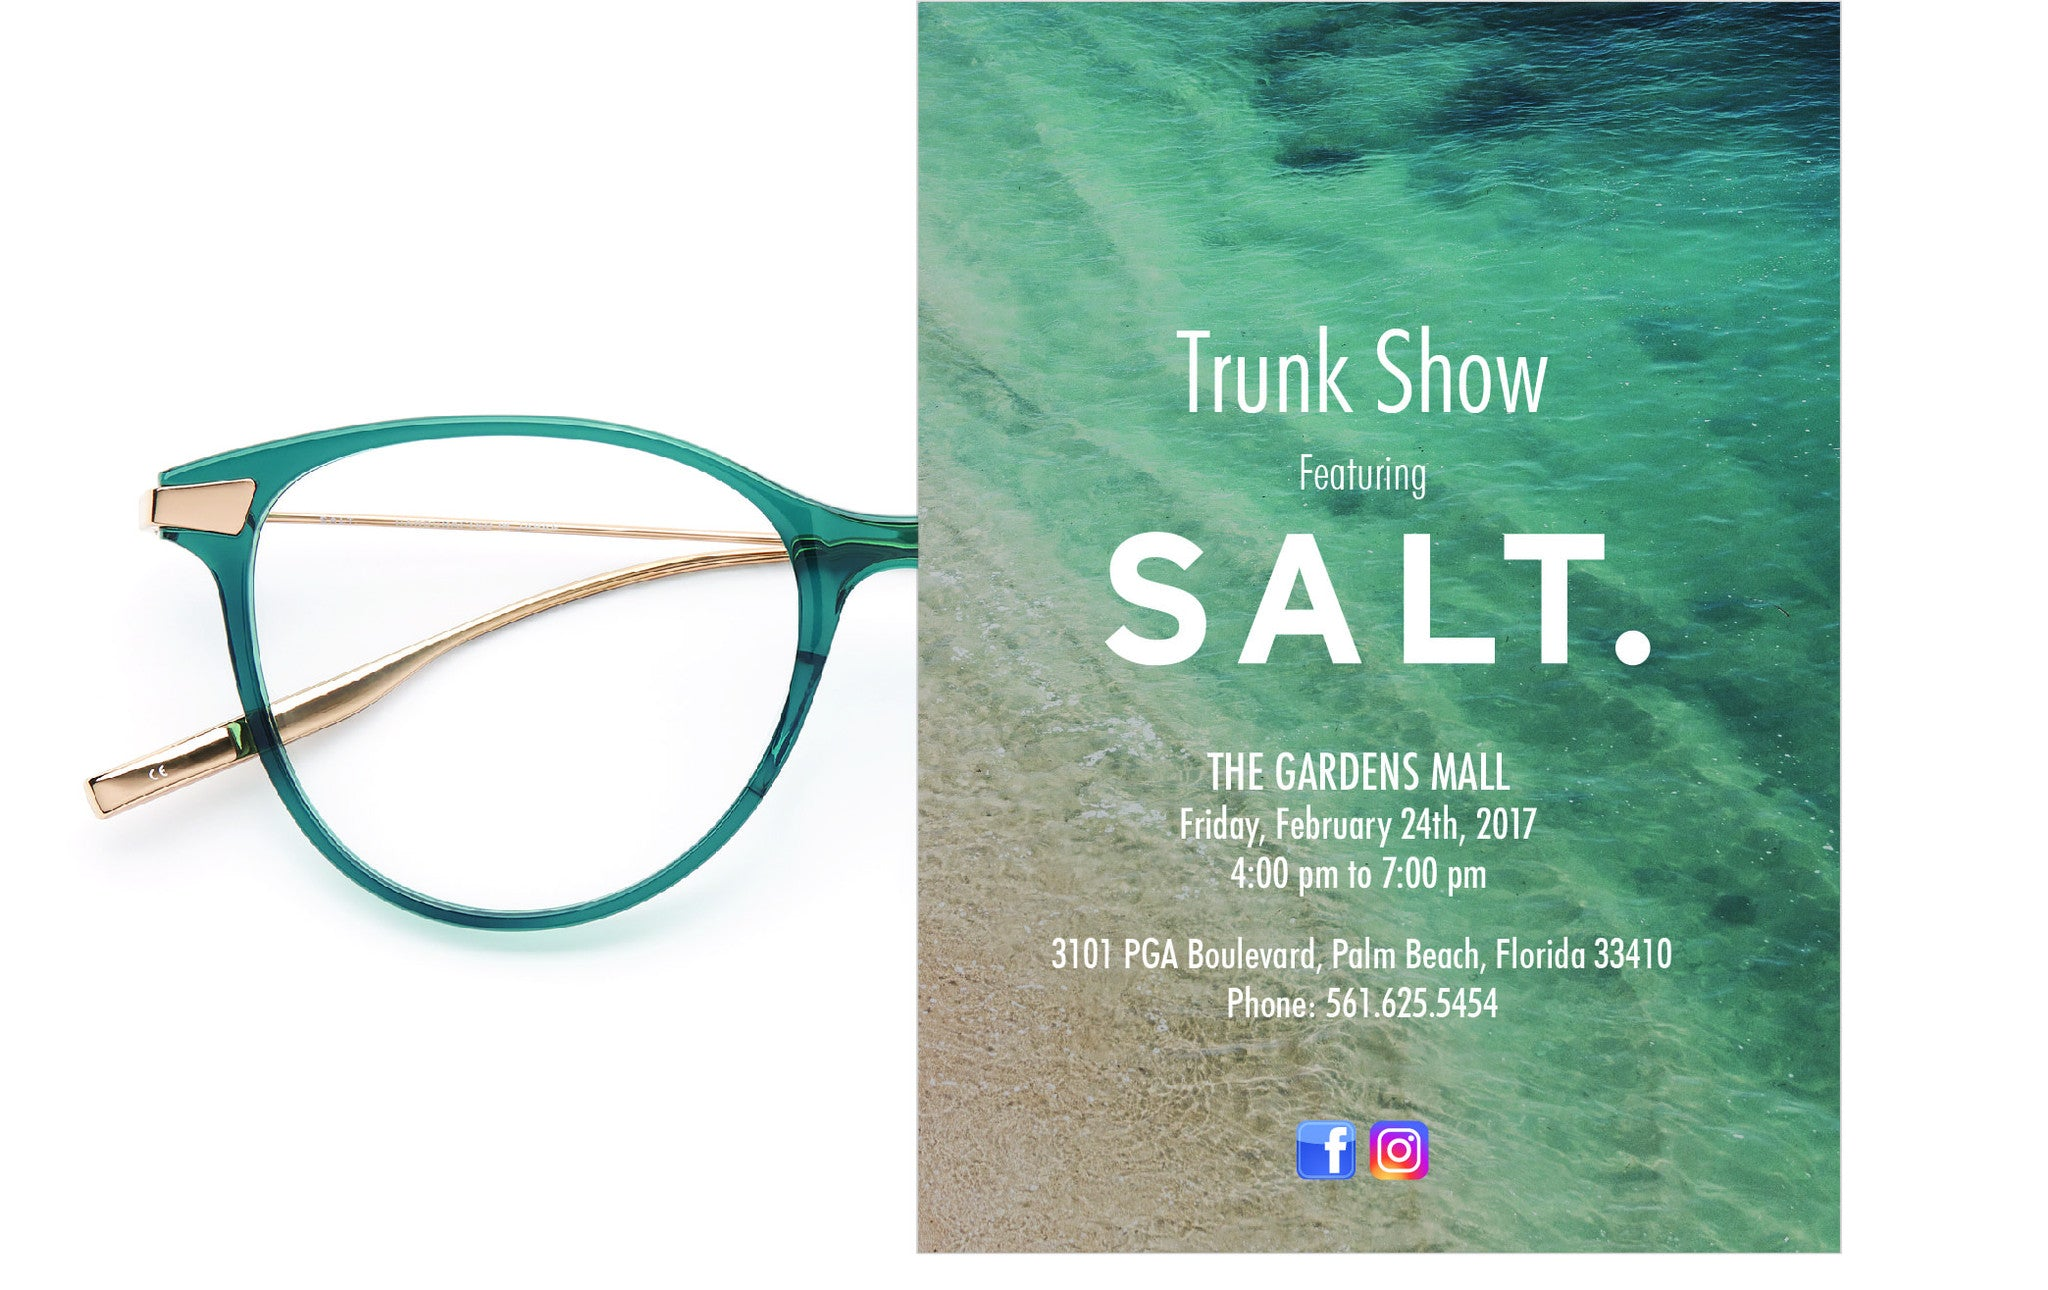 Salt trunk show this Friday at The Gardens Mall – Edward Beiner